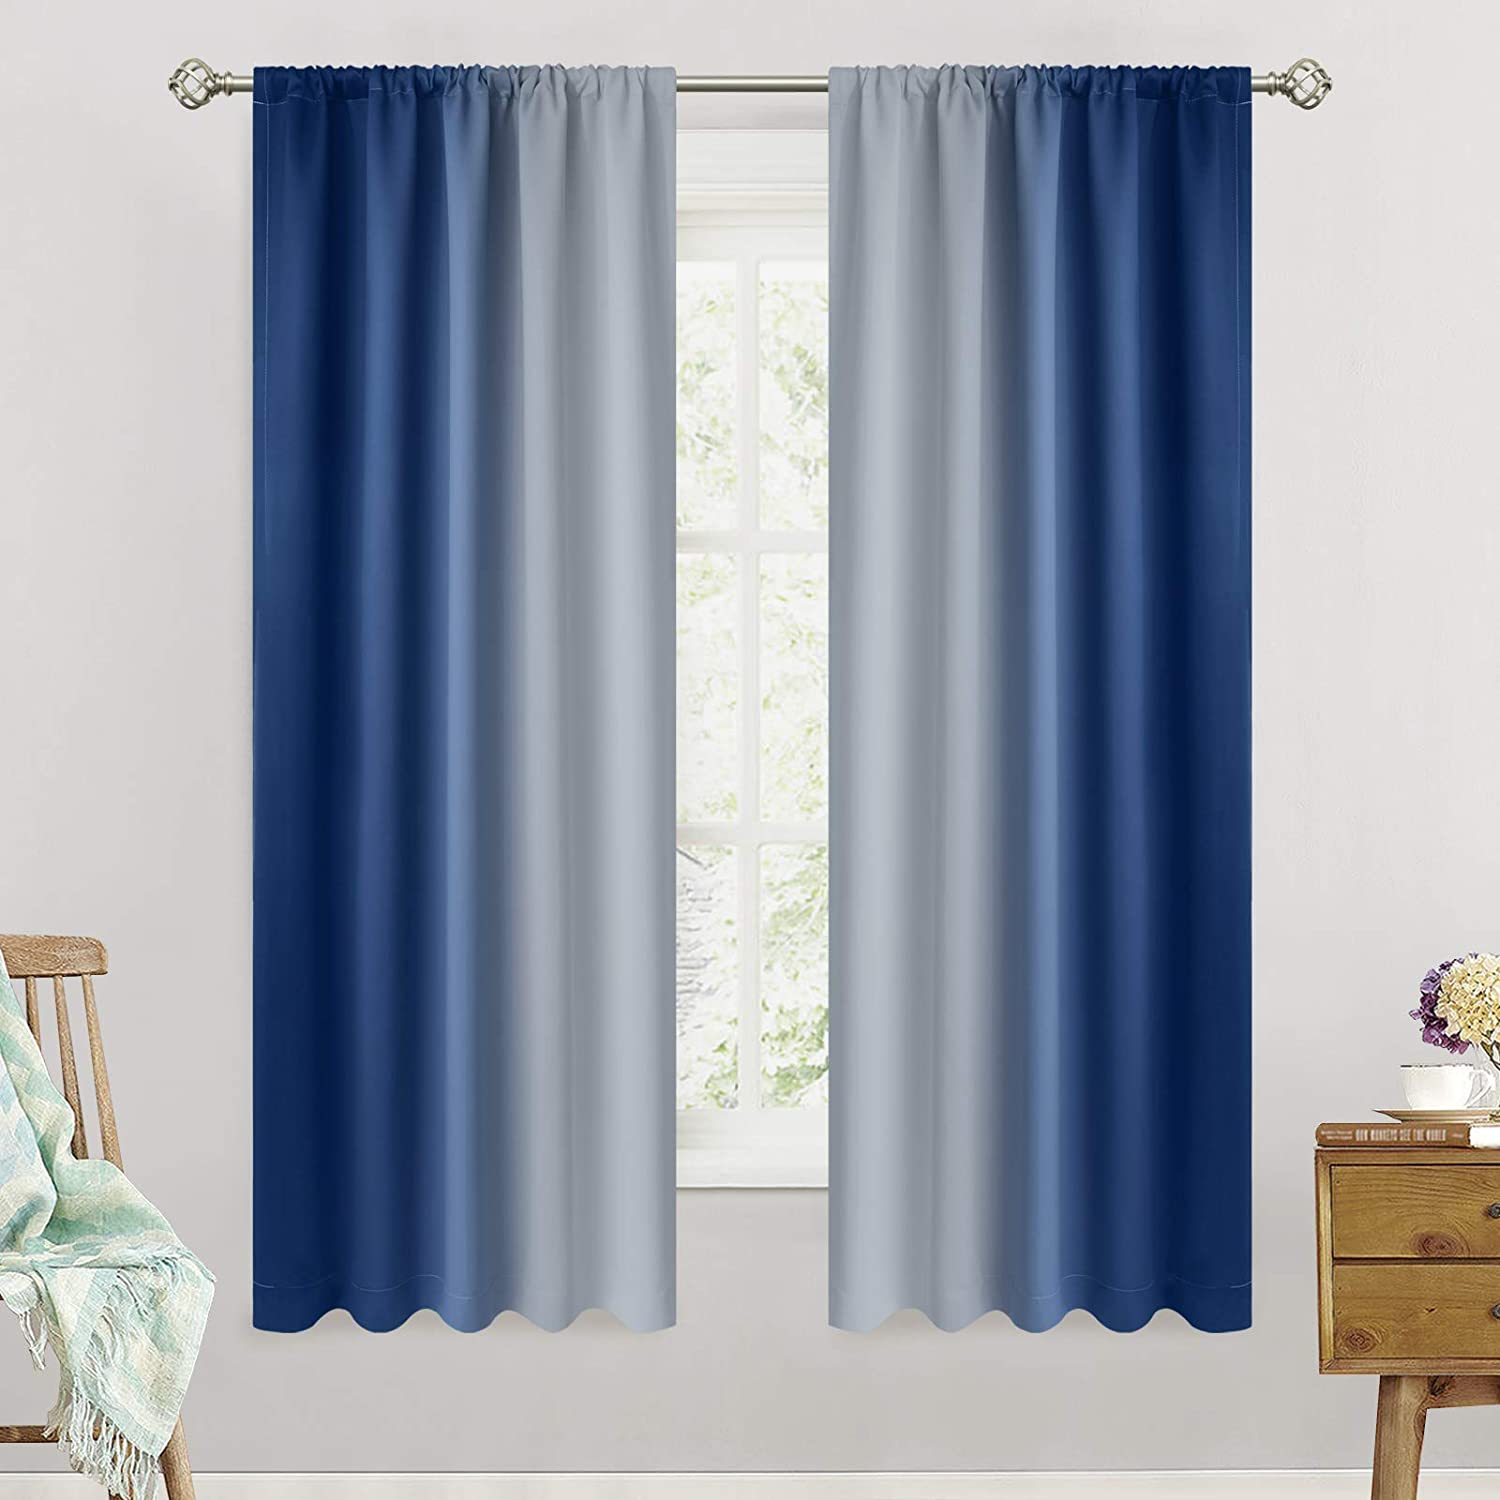 SimpleHome Ombre Max 79% OFF Room Darkening Curtains Po for Living Rod A surprise price is realized